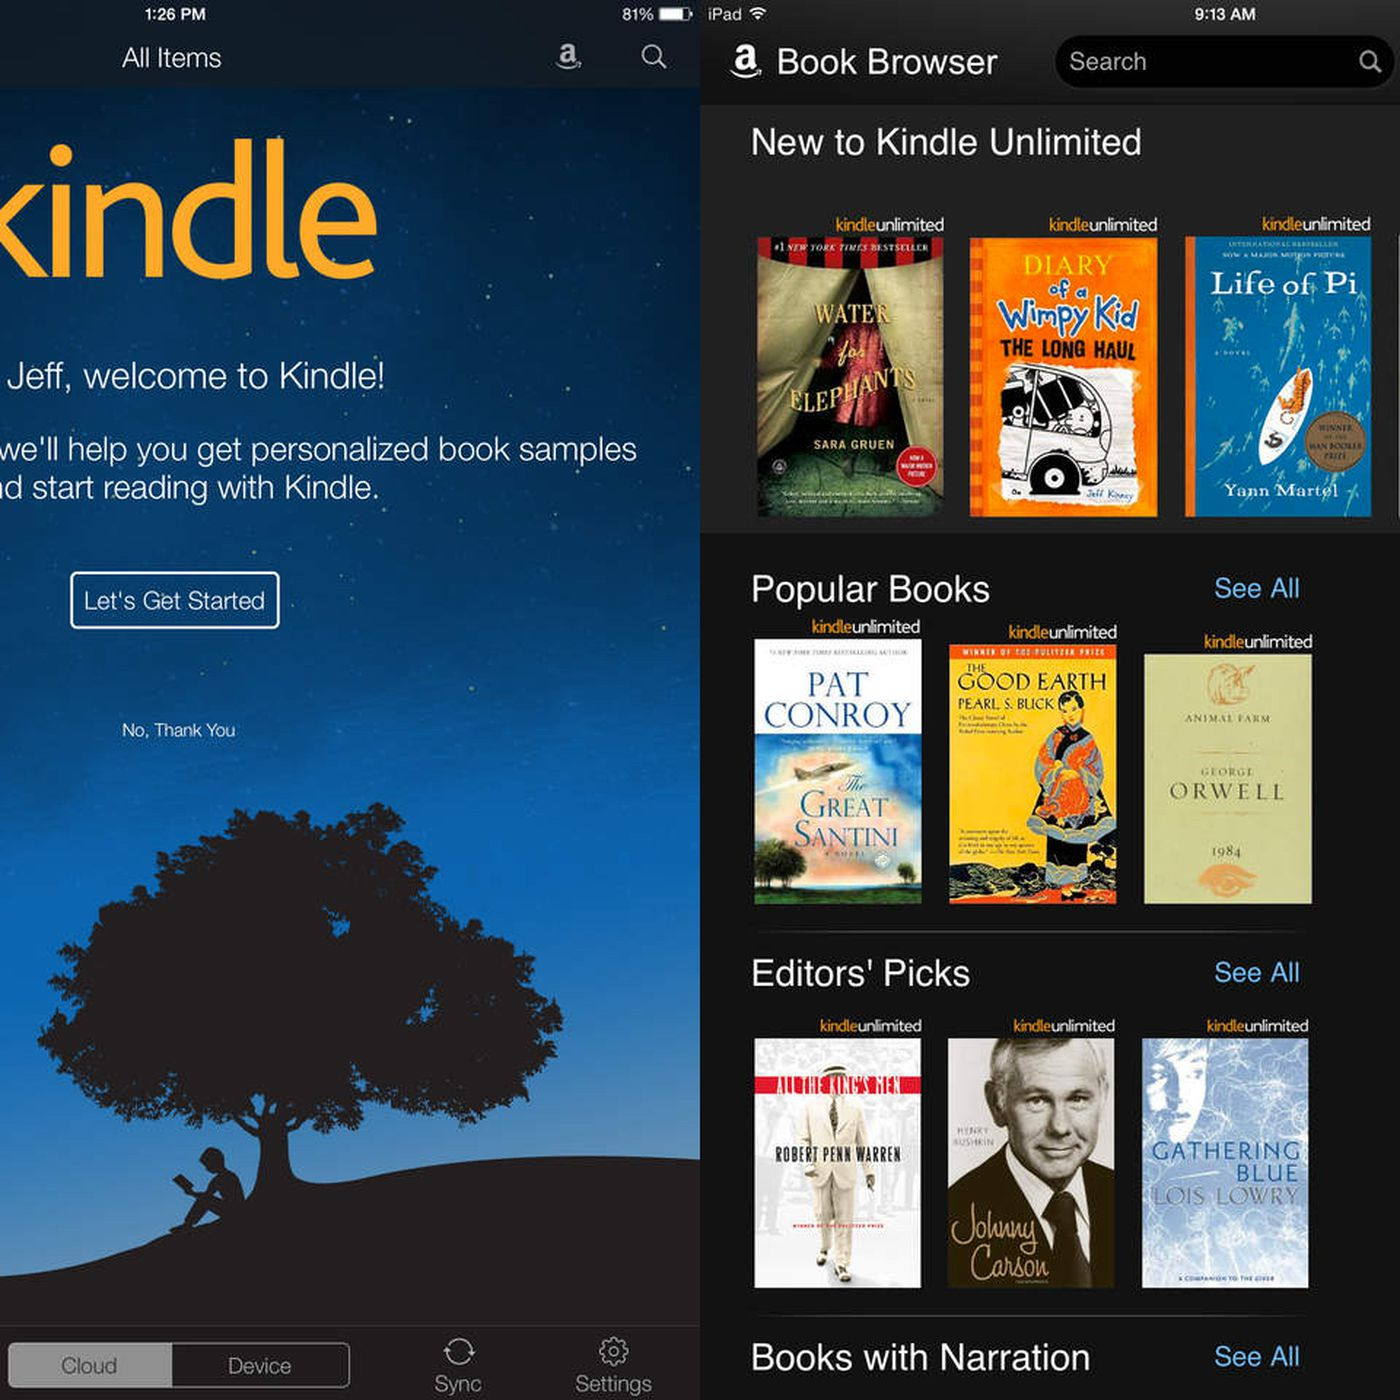 Amazon's Kindle iOS app adds Goodreads and Kindle Unlimited